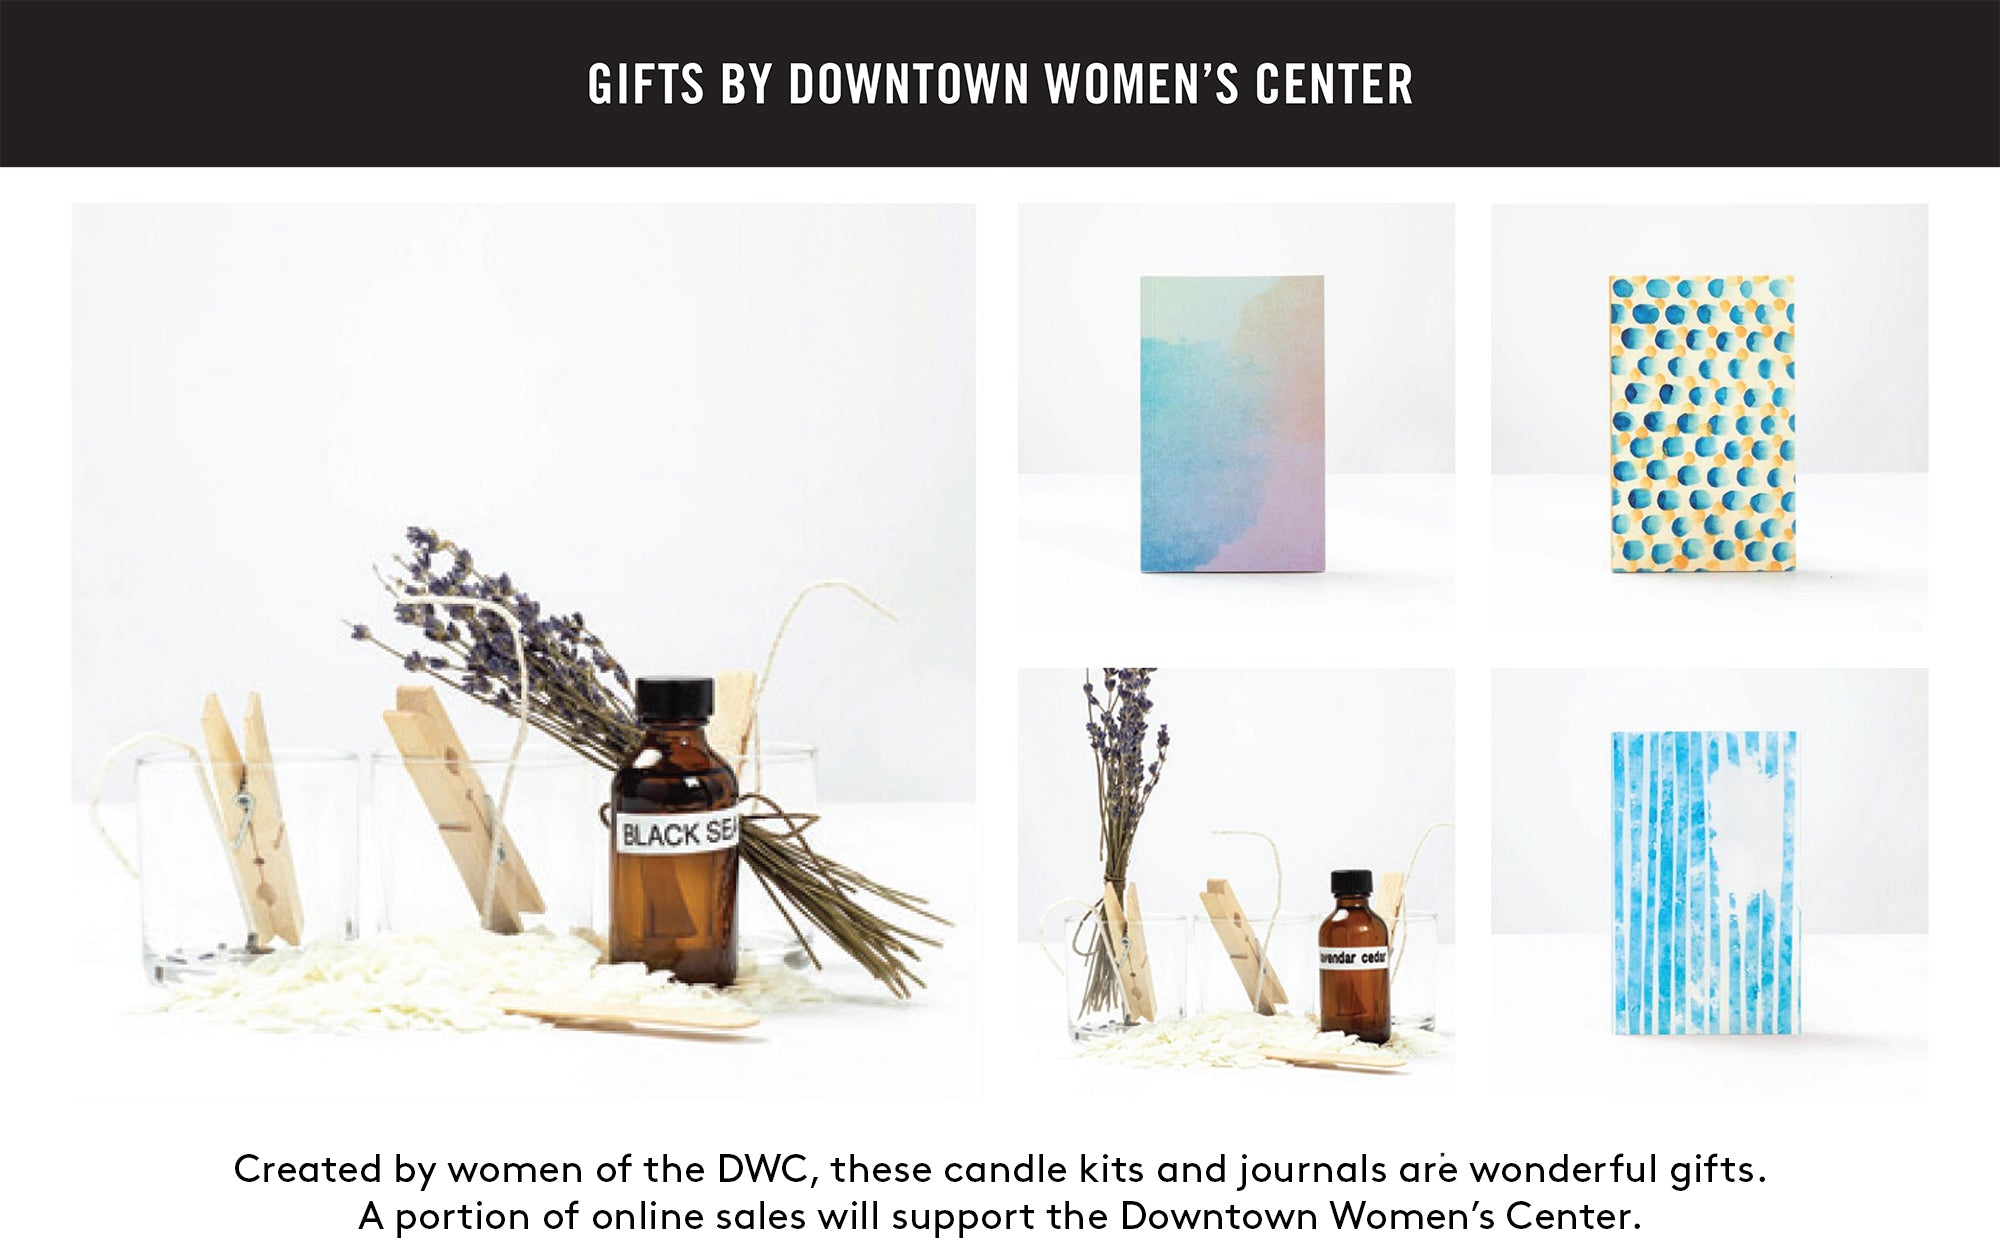 Created by women of the DWC, these candle kits and journals are wonderful gifts.